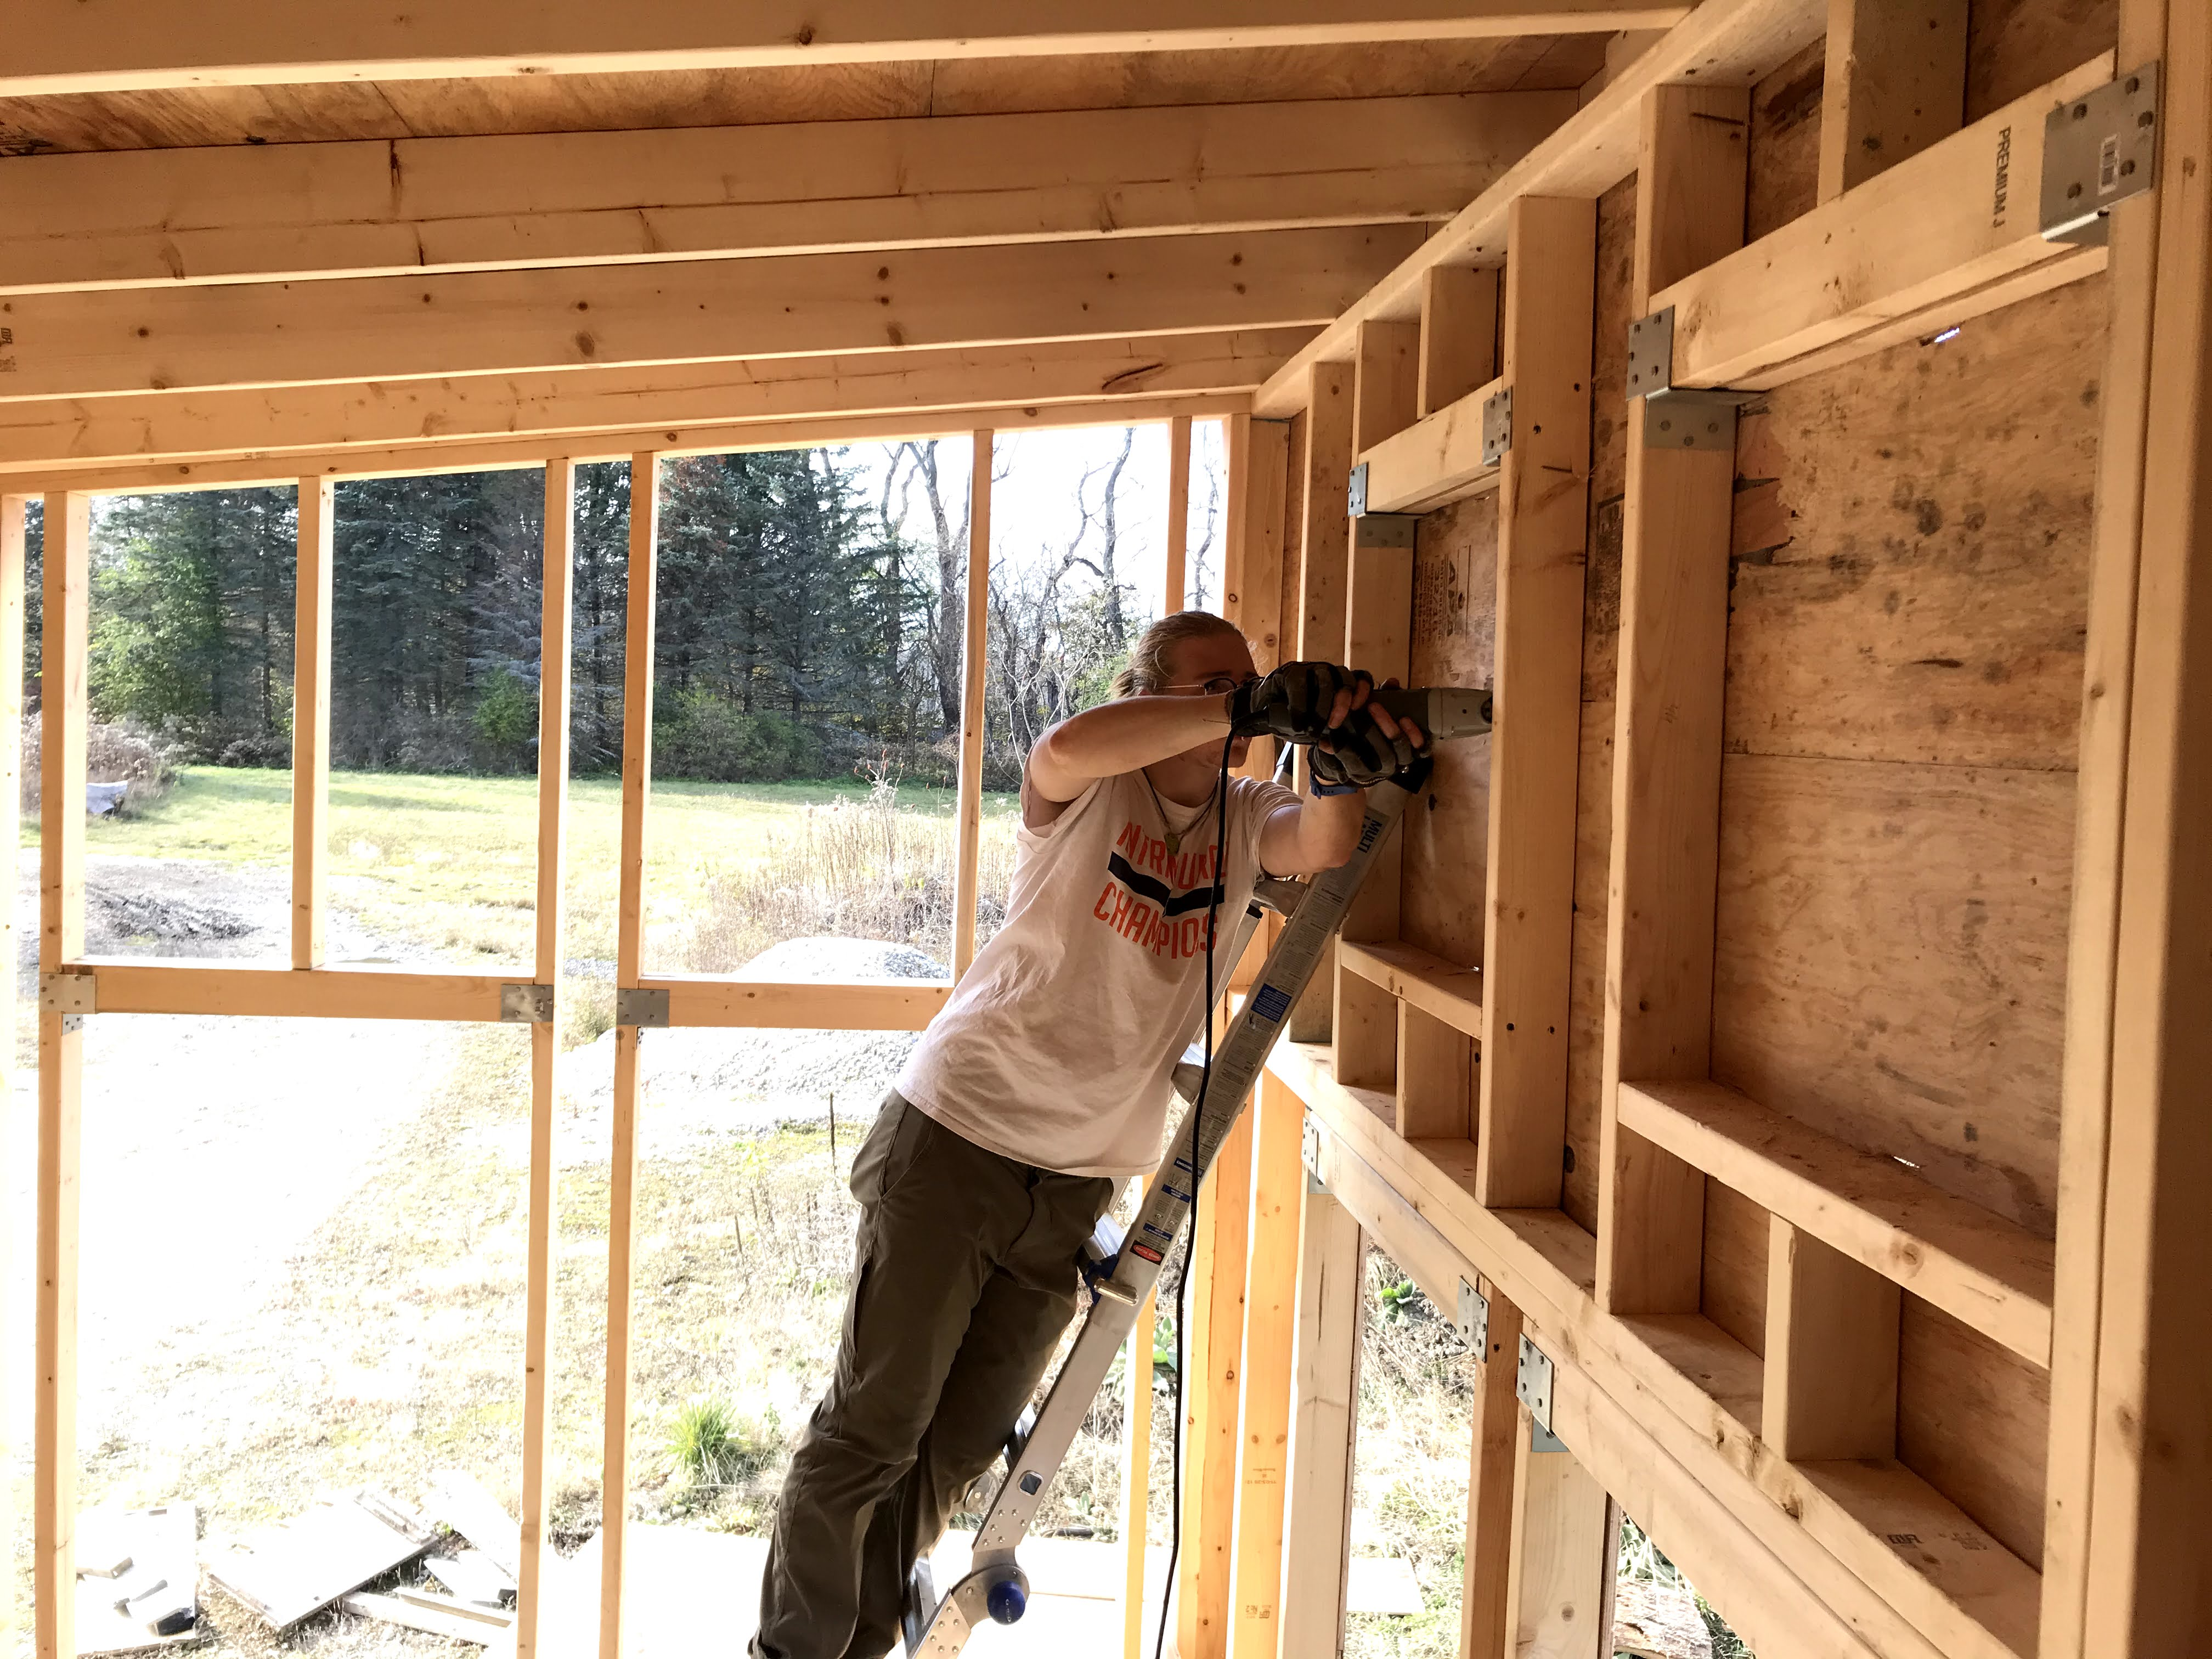 Zach de Besche working to construct the tiny house for his environmental studies capstone project (Photo courtesy of Julia Sharapi)